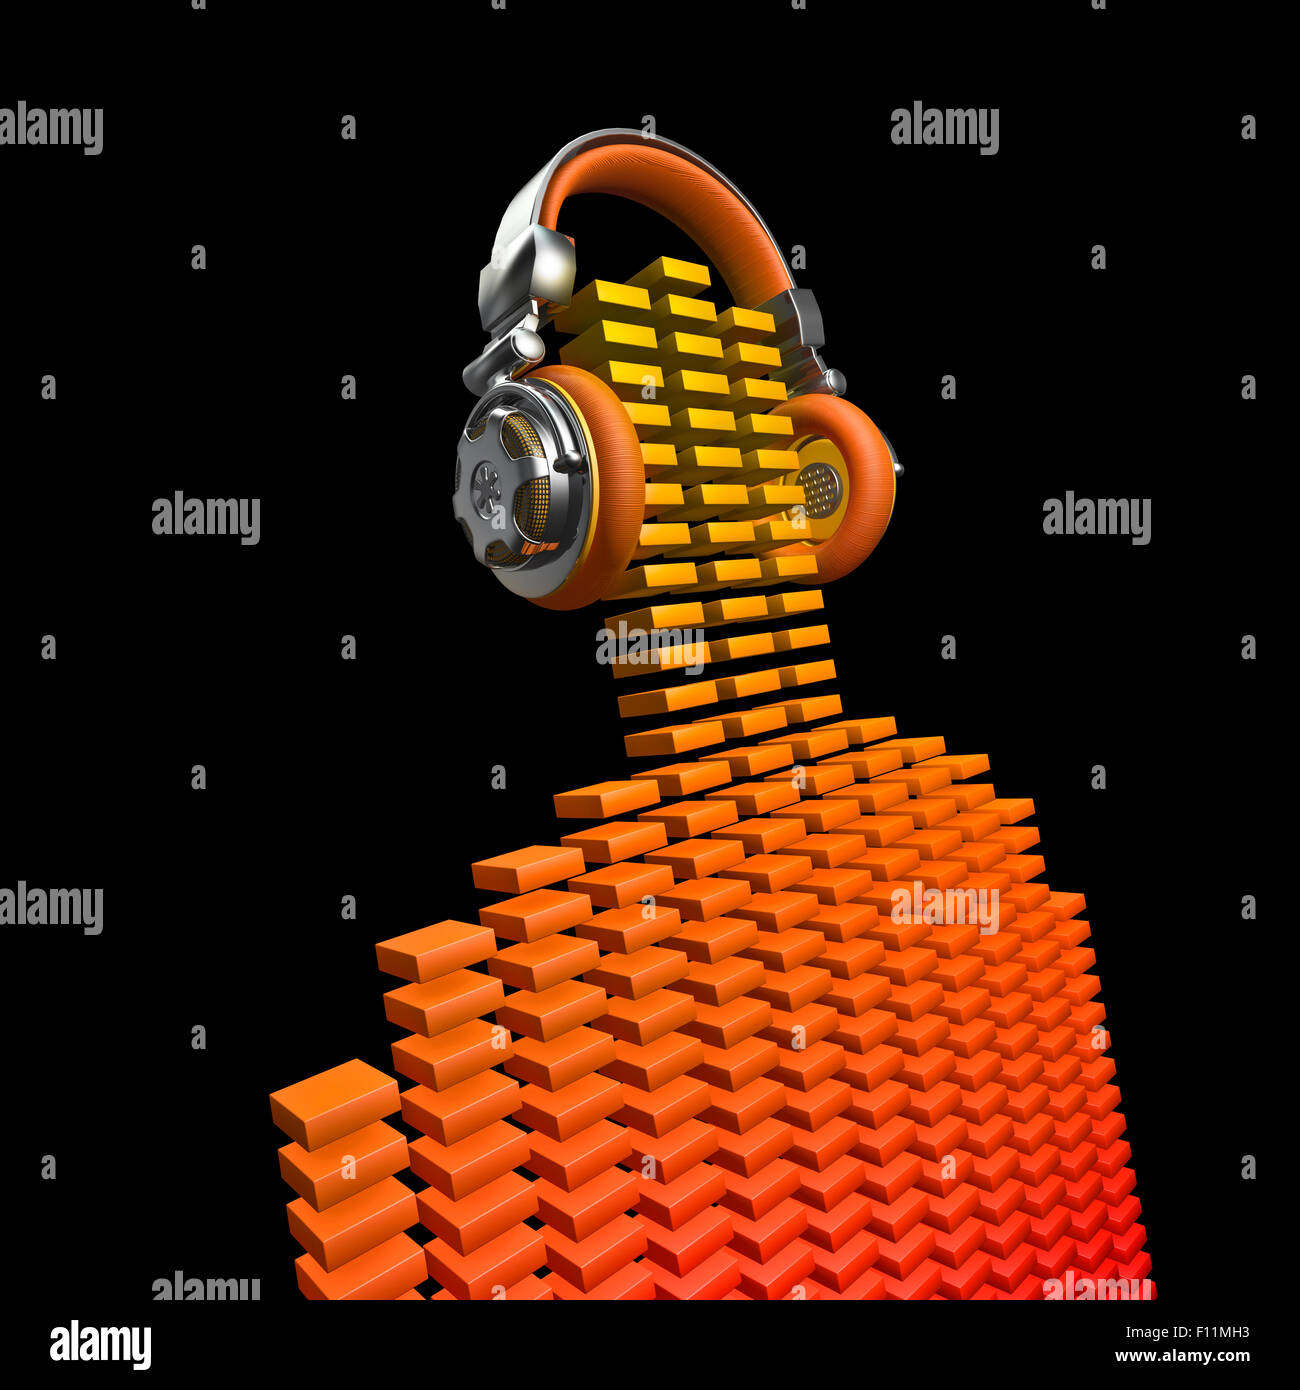 Virtual Volume Stock Photos Images Alamy Virtualdj Wiring Diagram Dj 3d Render Of Equalizer Bars Forming Figure With Headphones Image